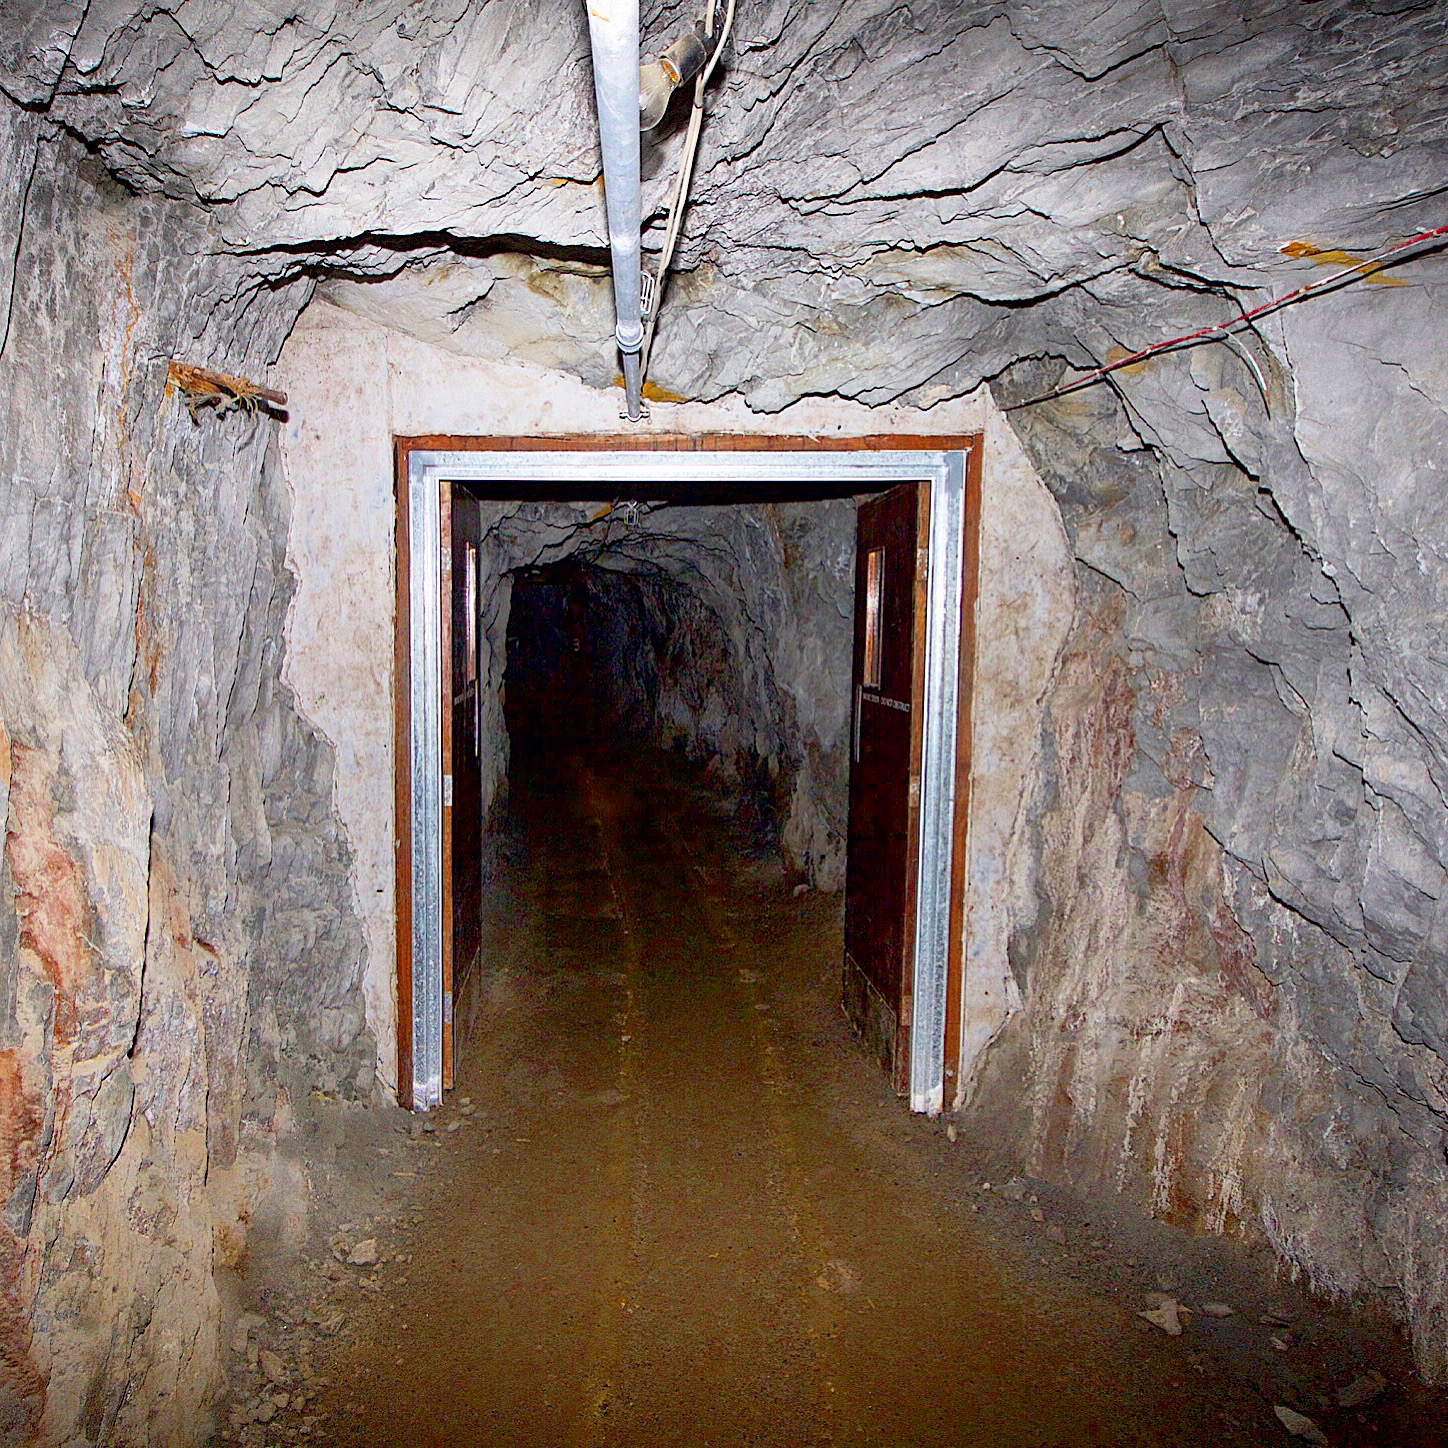 At Bendigo's Central Deborah Gold Mine you can explore the